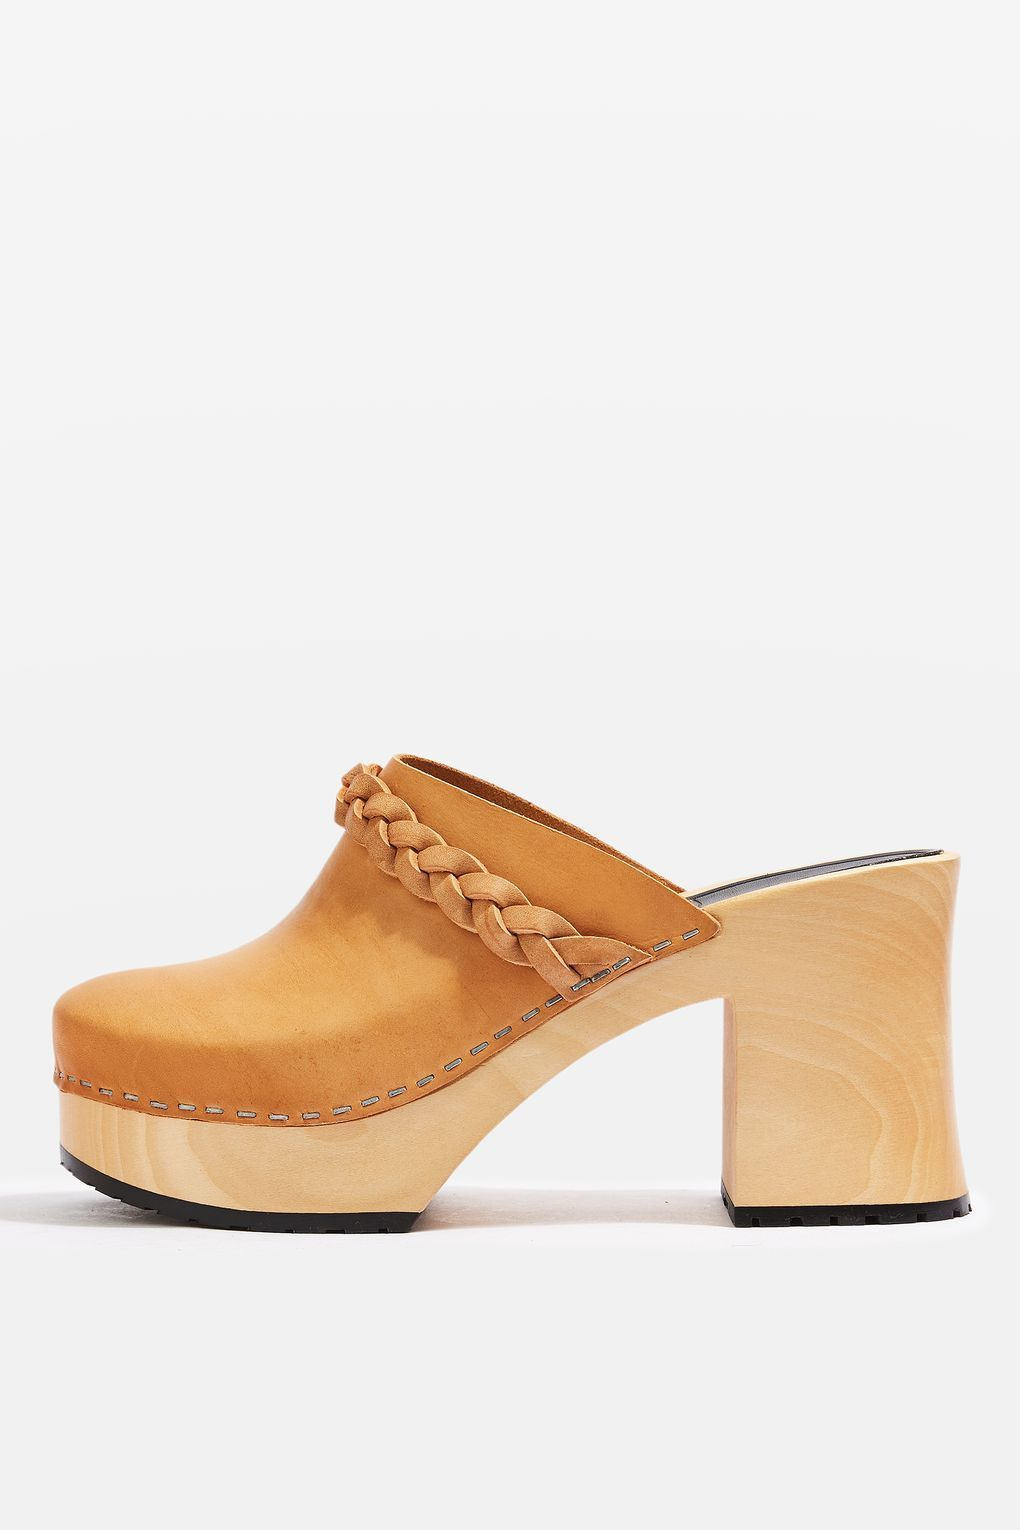 shop swedish hasbeens shoes